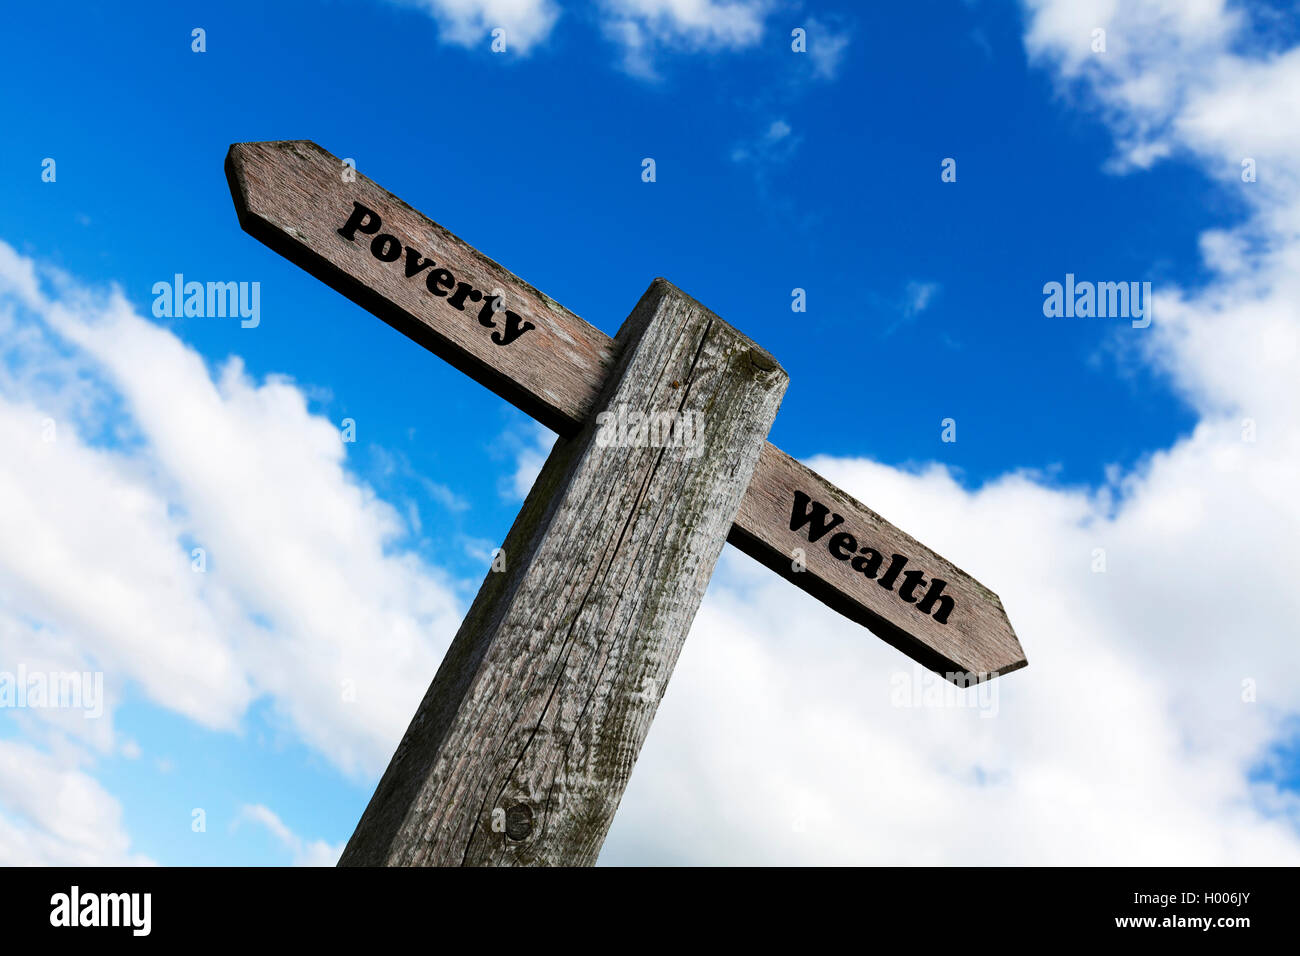 Poverty wealth concept road sign rich poor money debt haves & have nots riches choice choose direction future - Stock Image